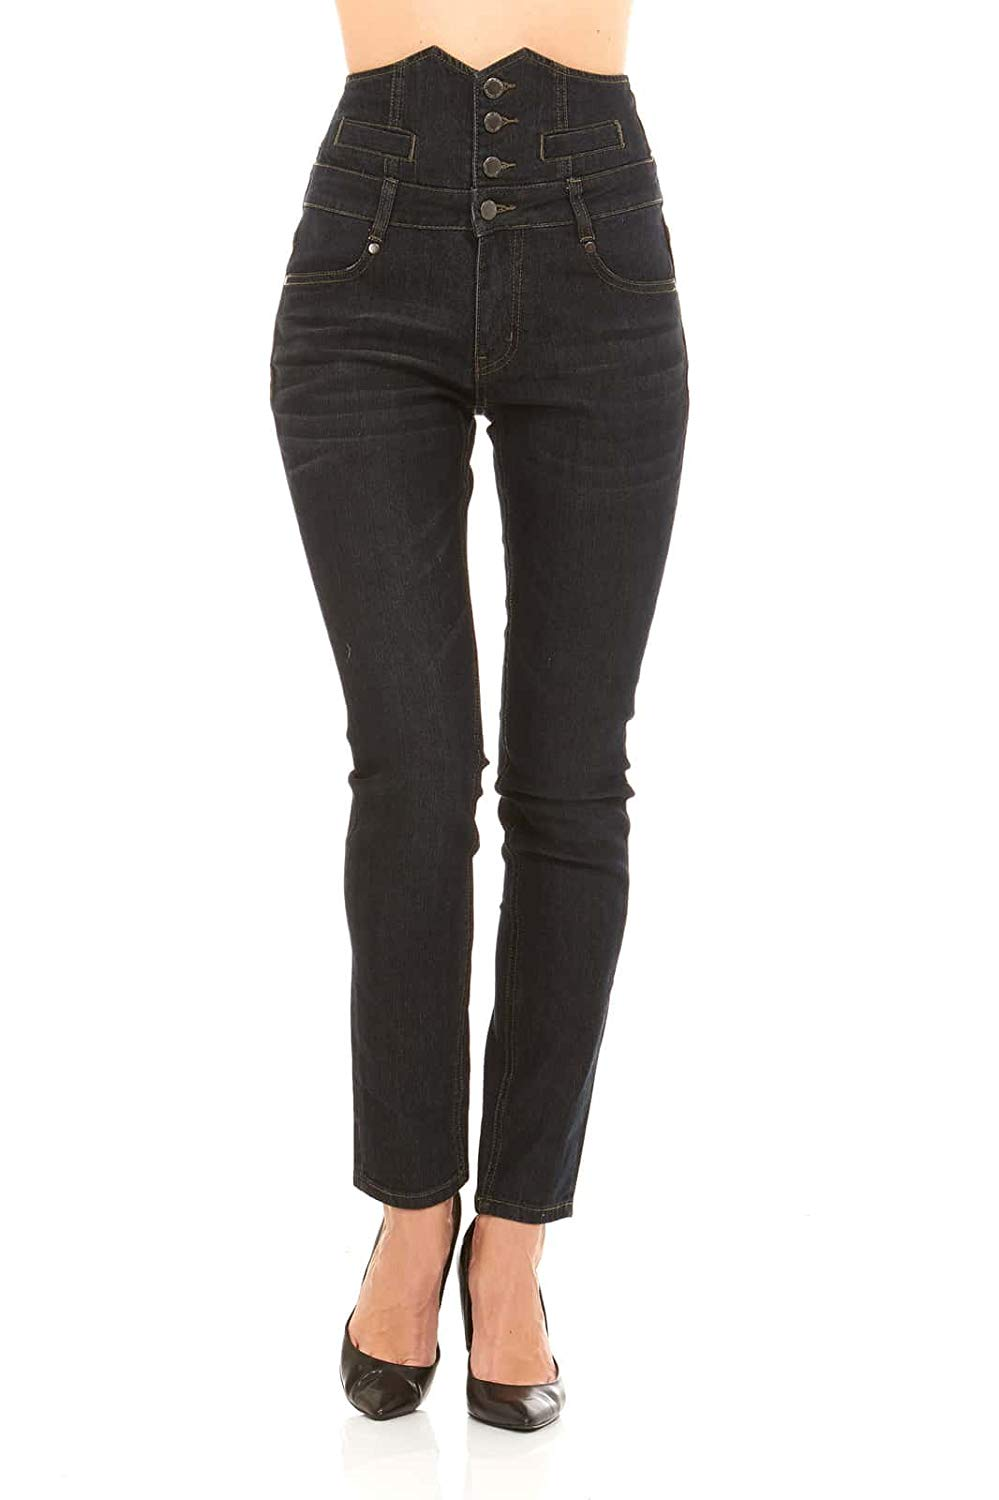 82a2eafafe Get Quotations · Women's Classic High Waisted Denim Skinny Jeans with  button front by Red Jeans